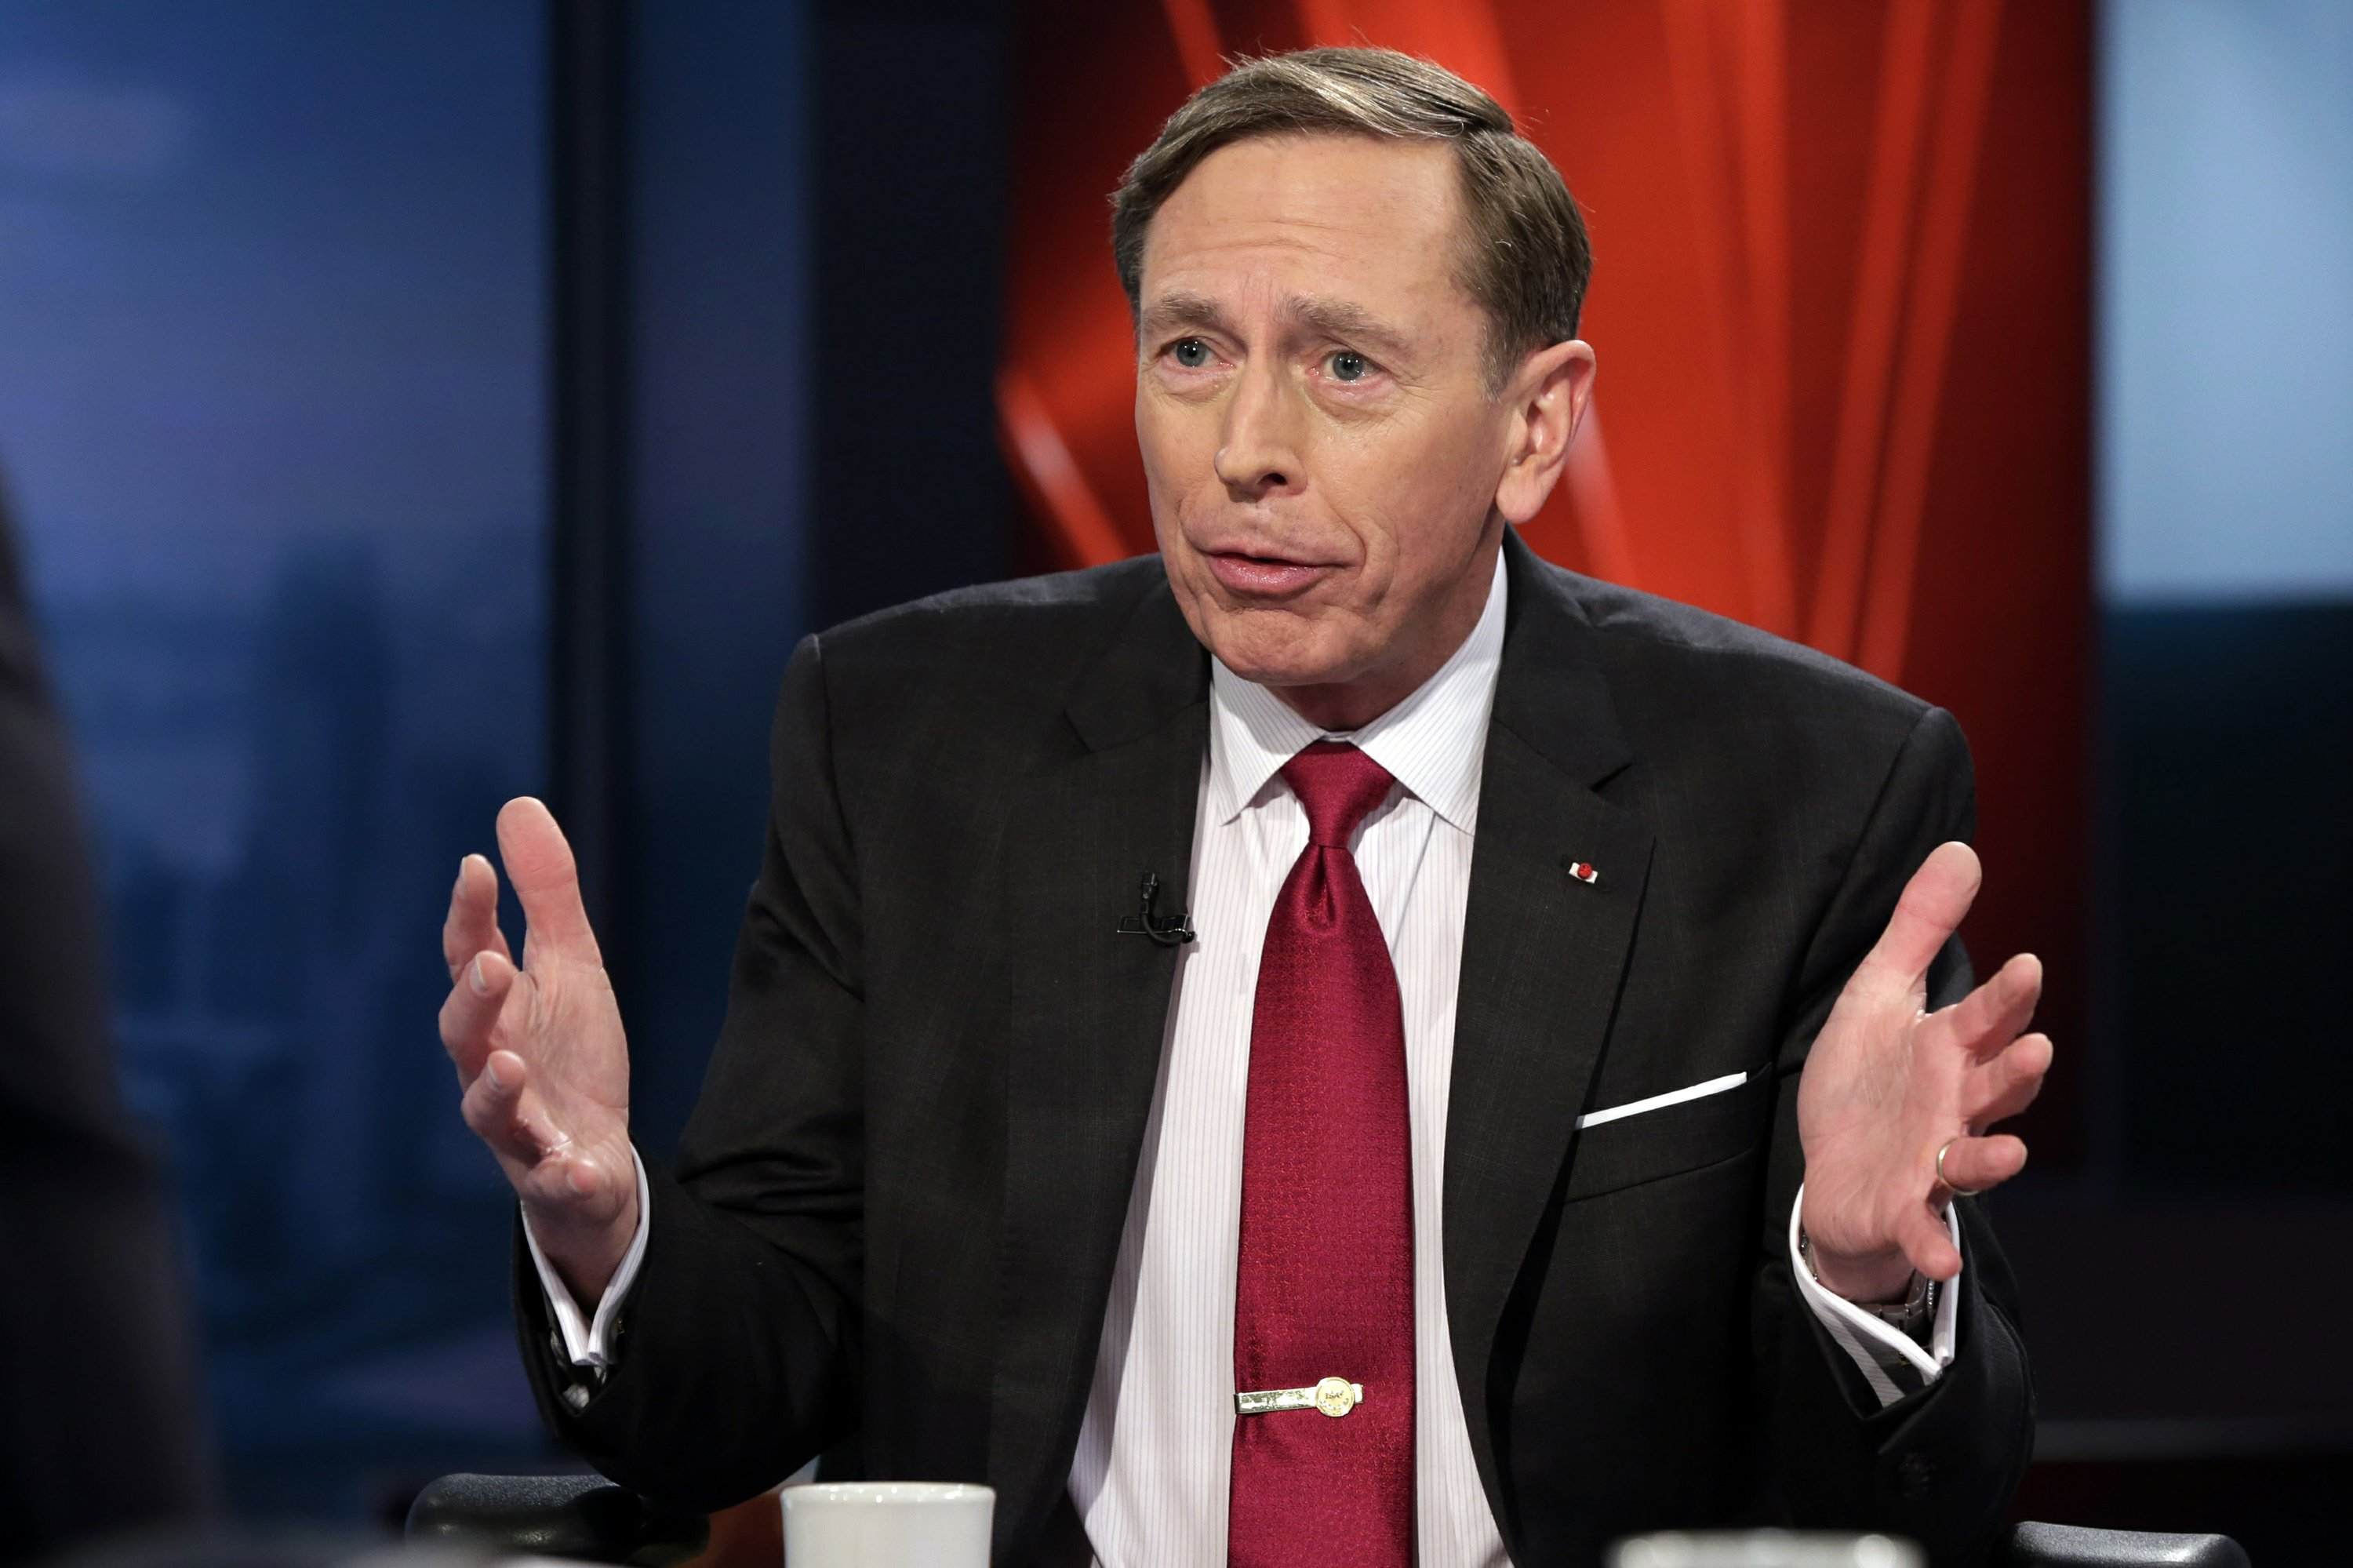 Similarities lacking in Clinton, Petraeus investigations